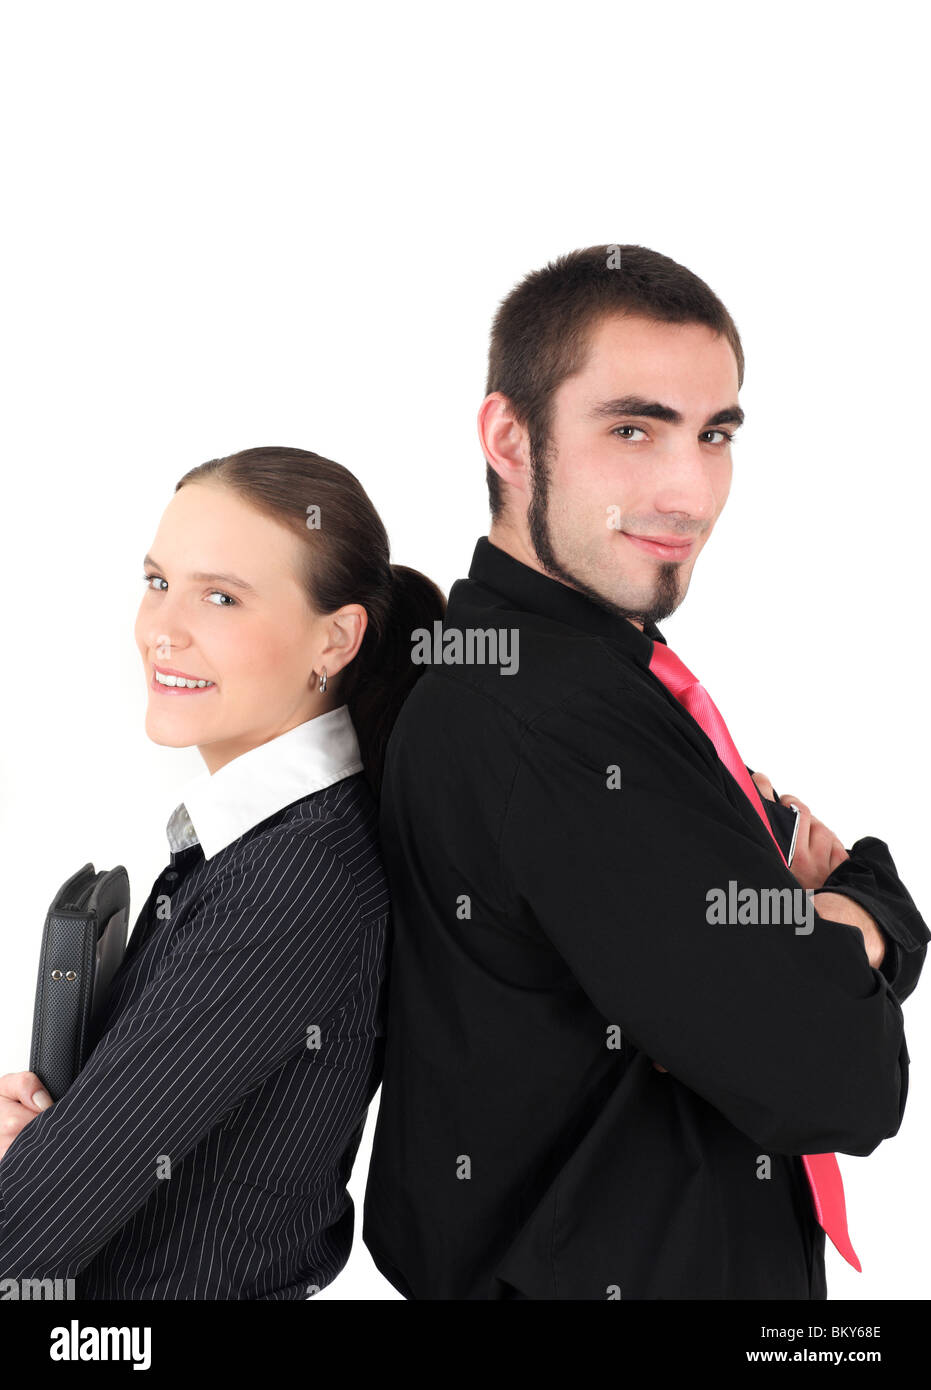 Portrait of businesswoman and businessman back to back, studio shot - Stock Image